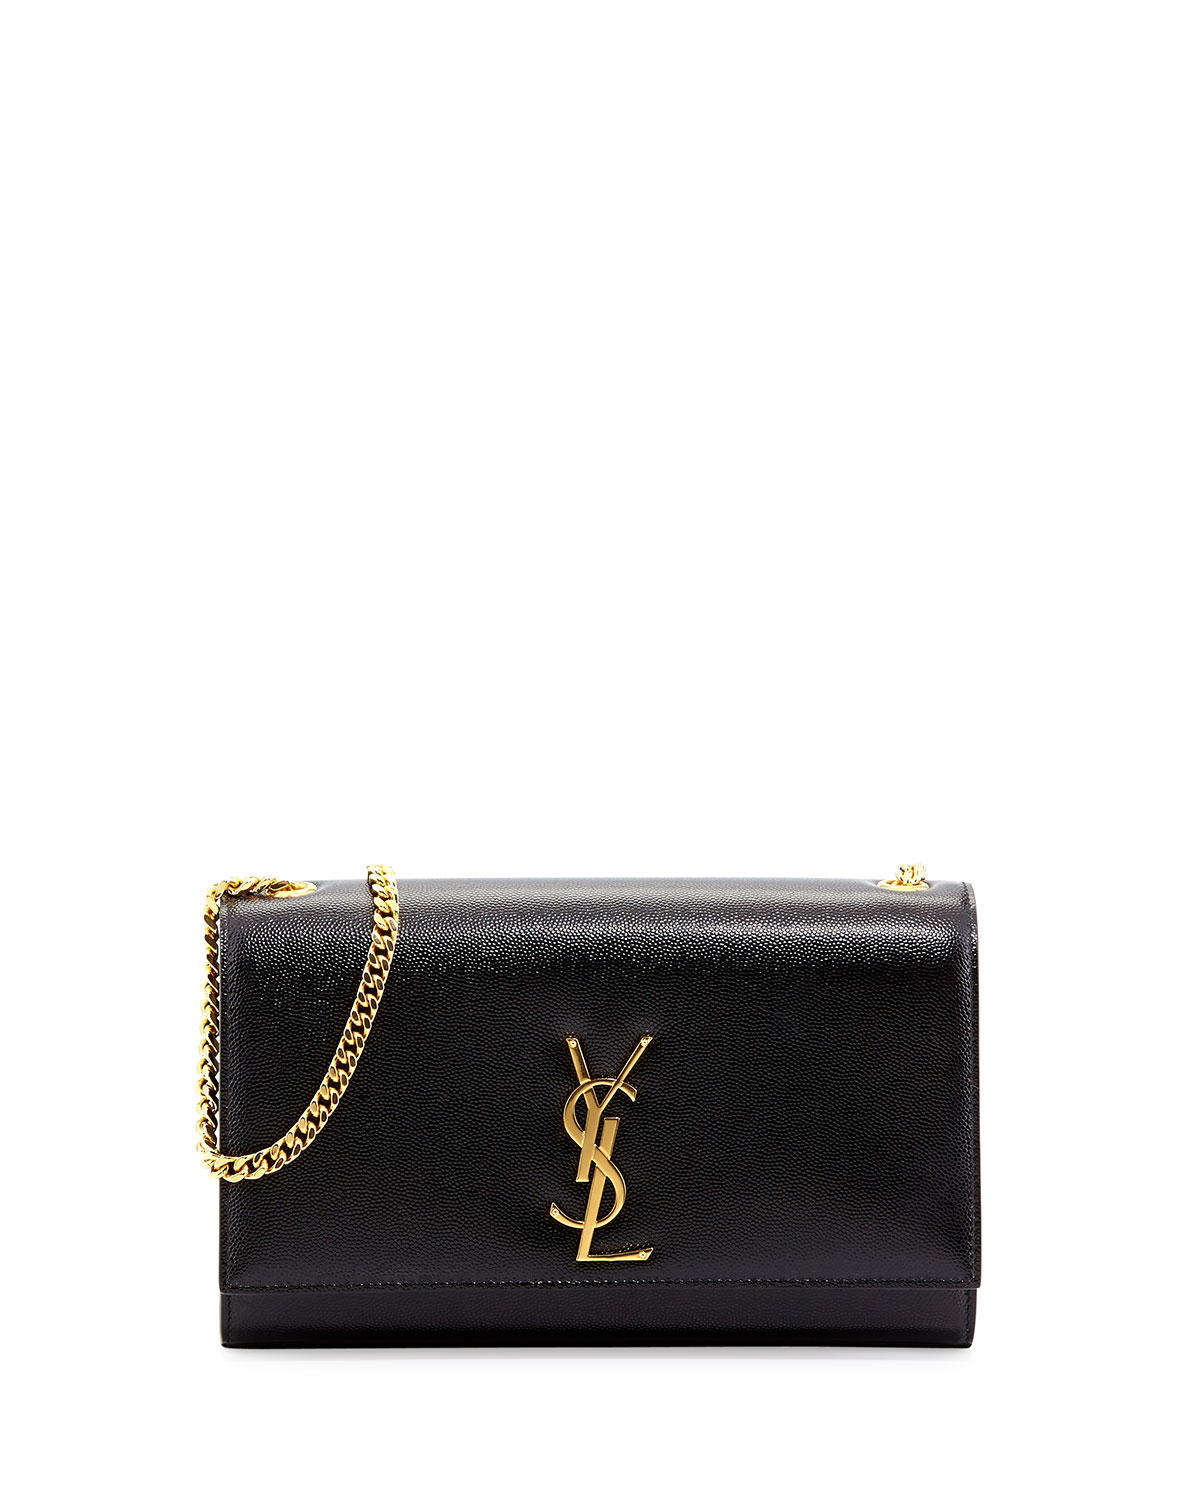 7b4b693a40 Saint Laurent Kate Monogram YSL Medium Shoulder Bag